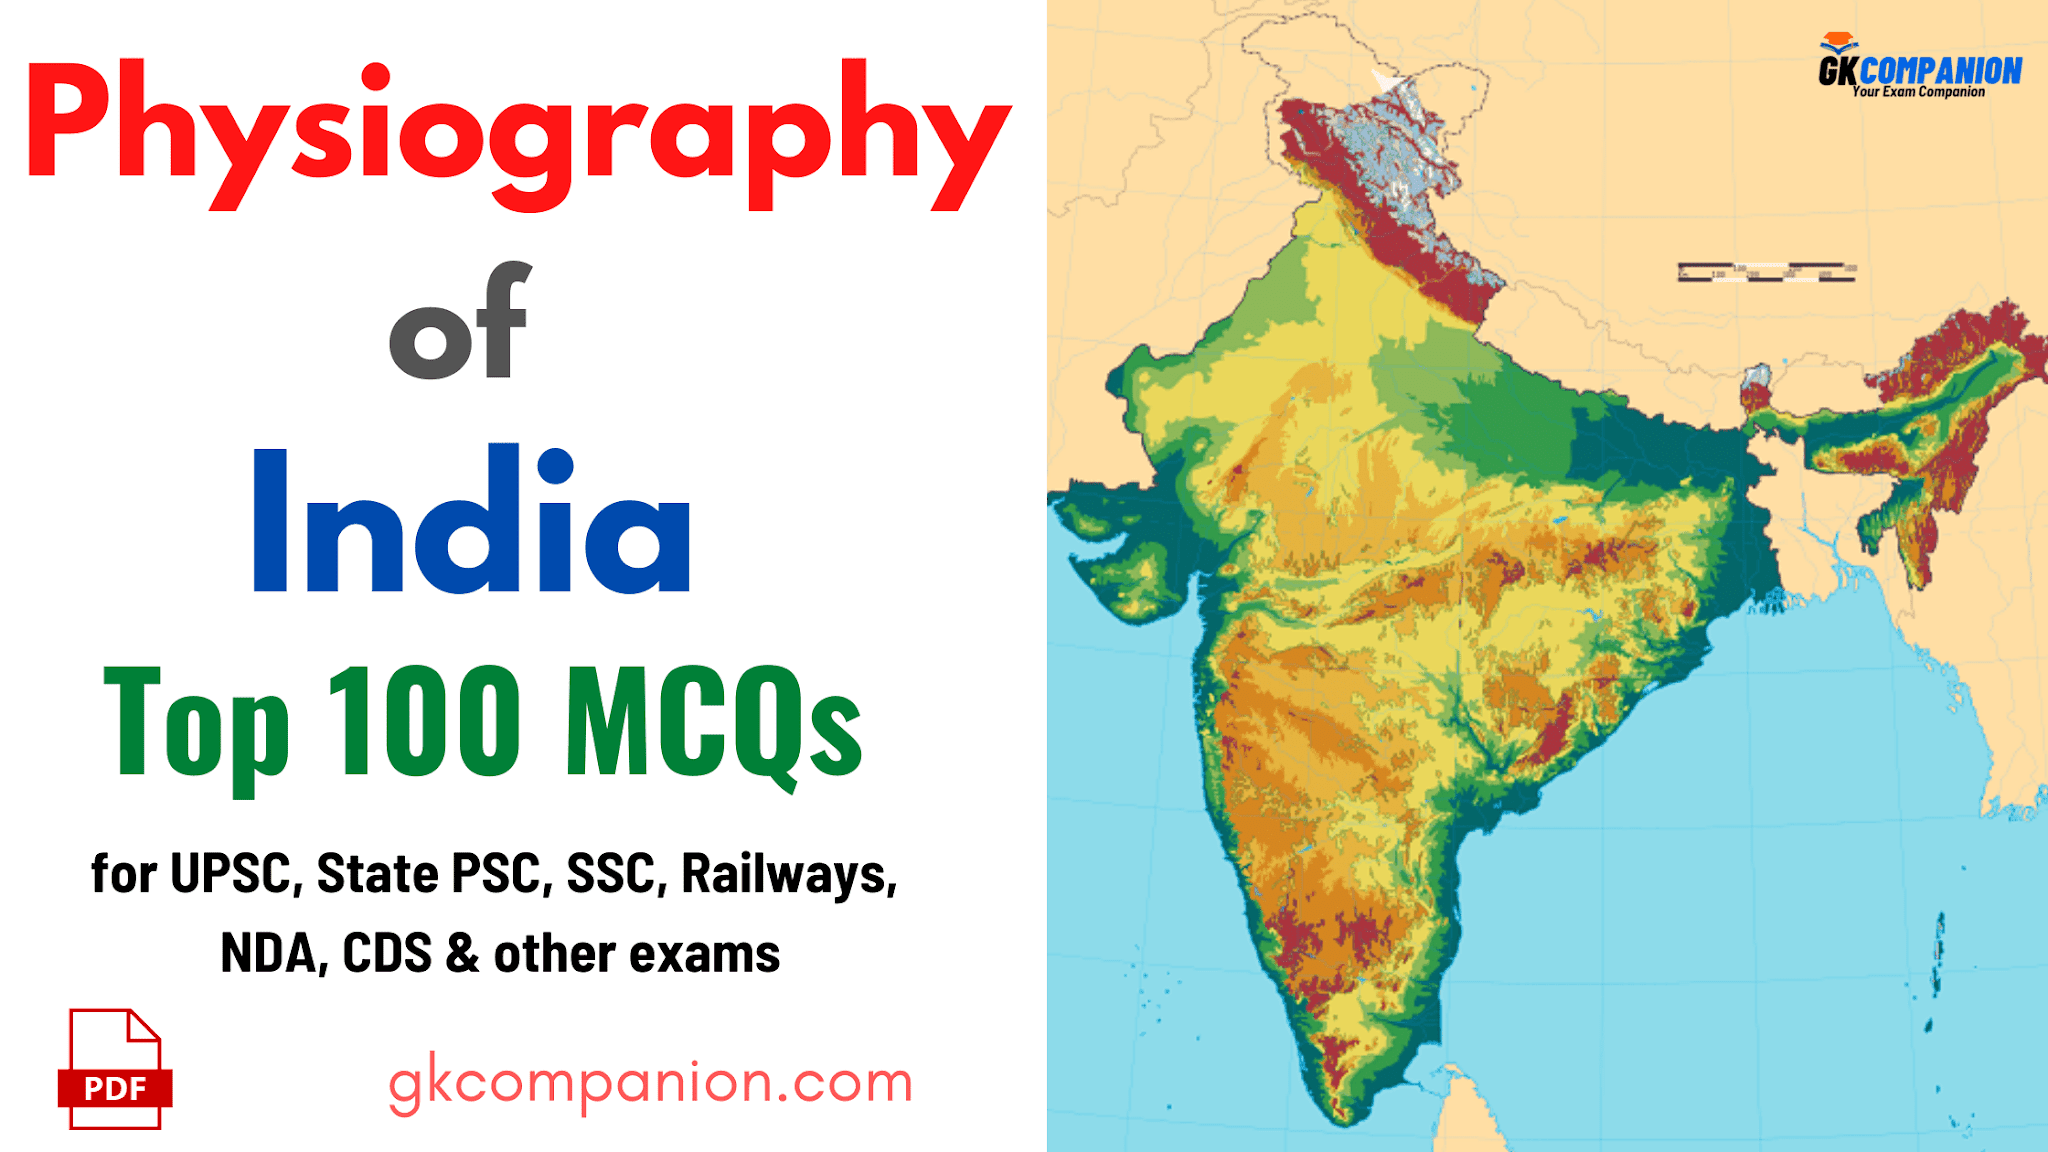 Top 100 MCQs on Physiography of India